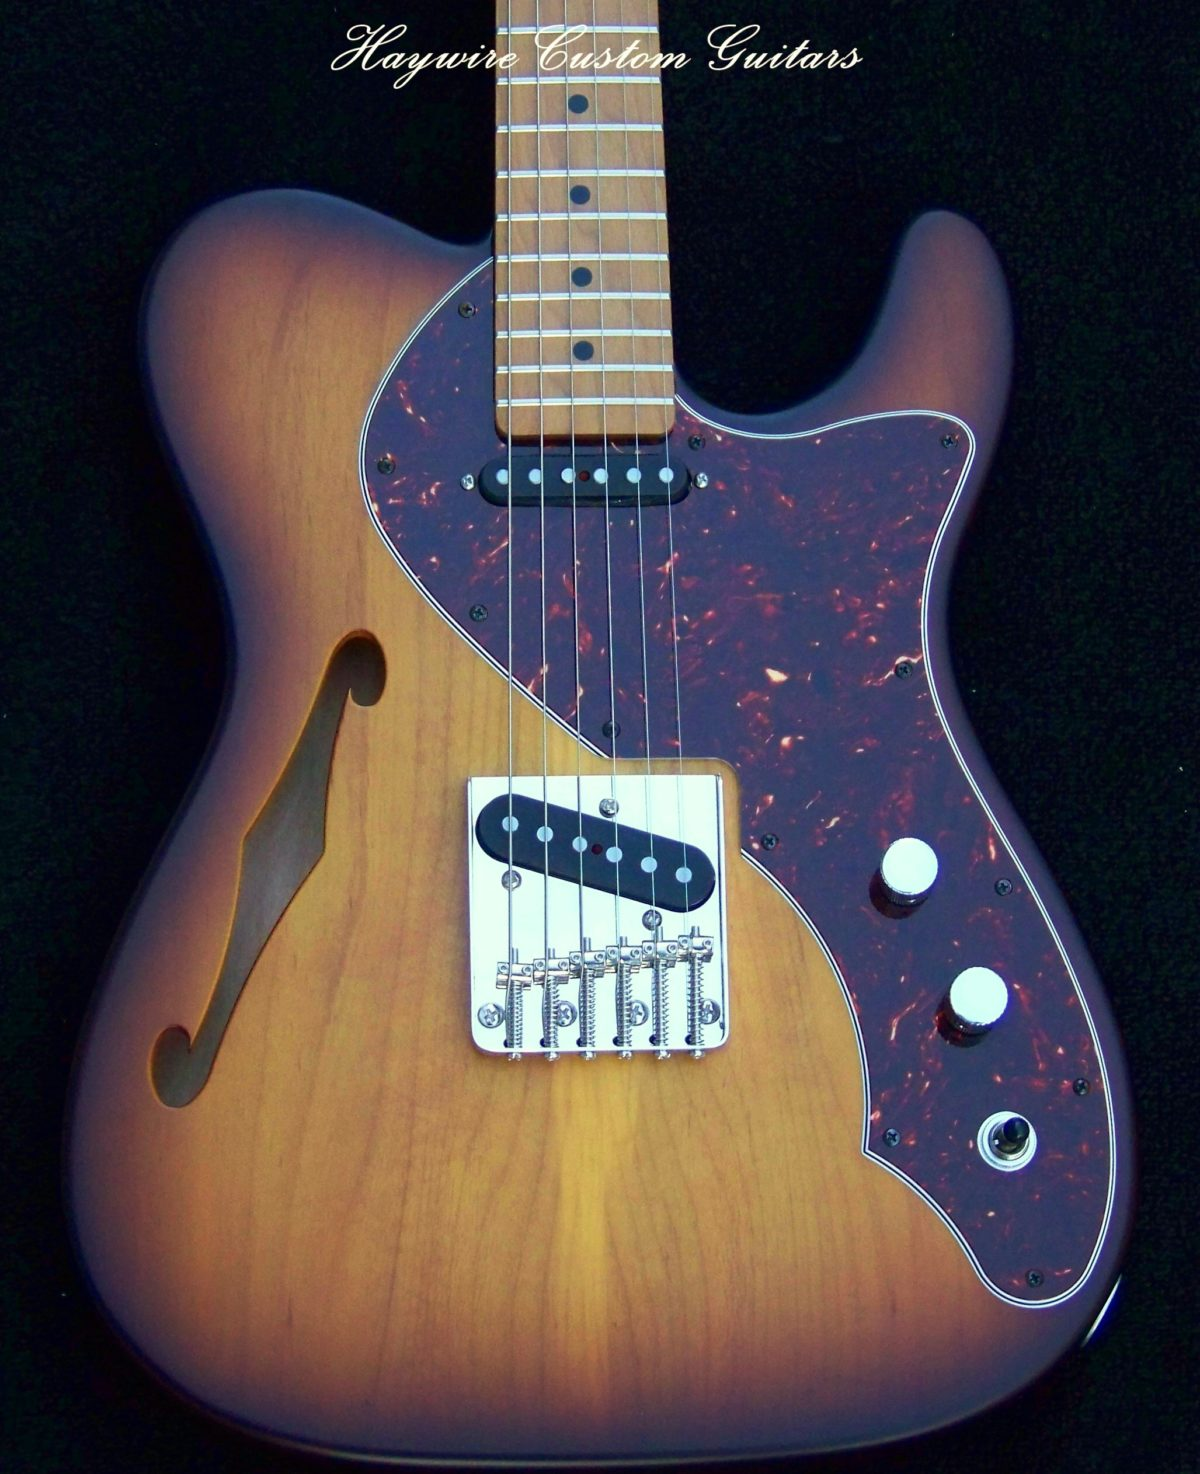 Haywire Custom Guitars Thinline tele